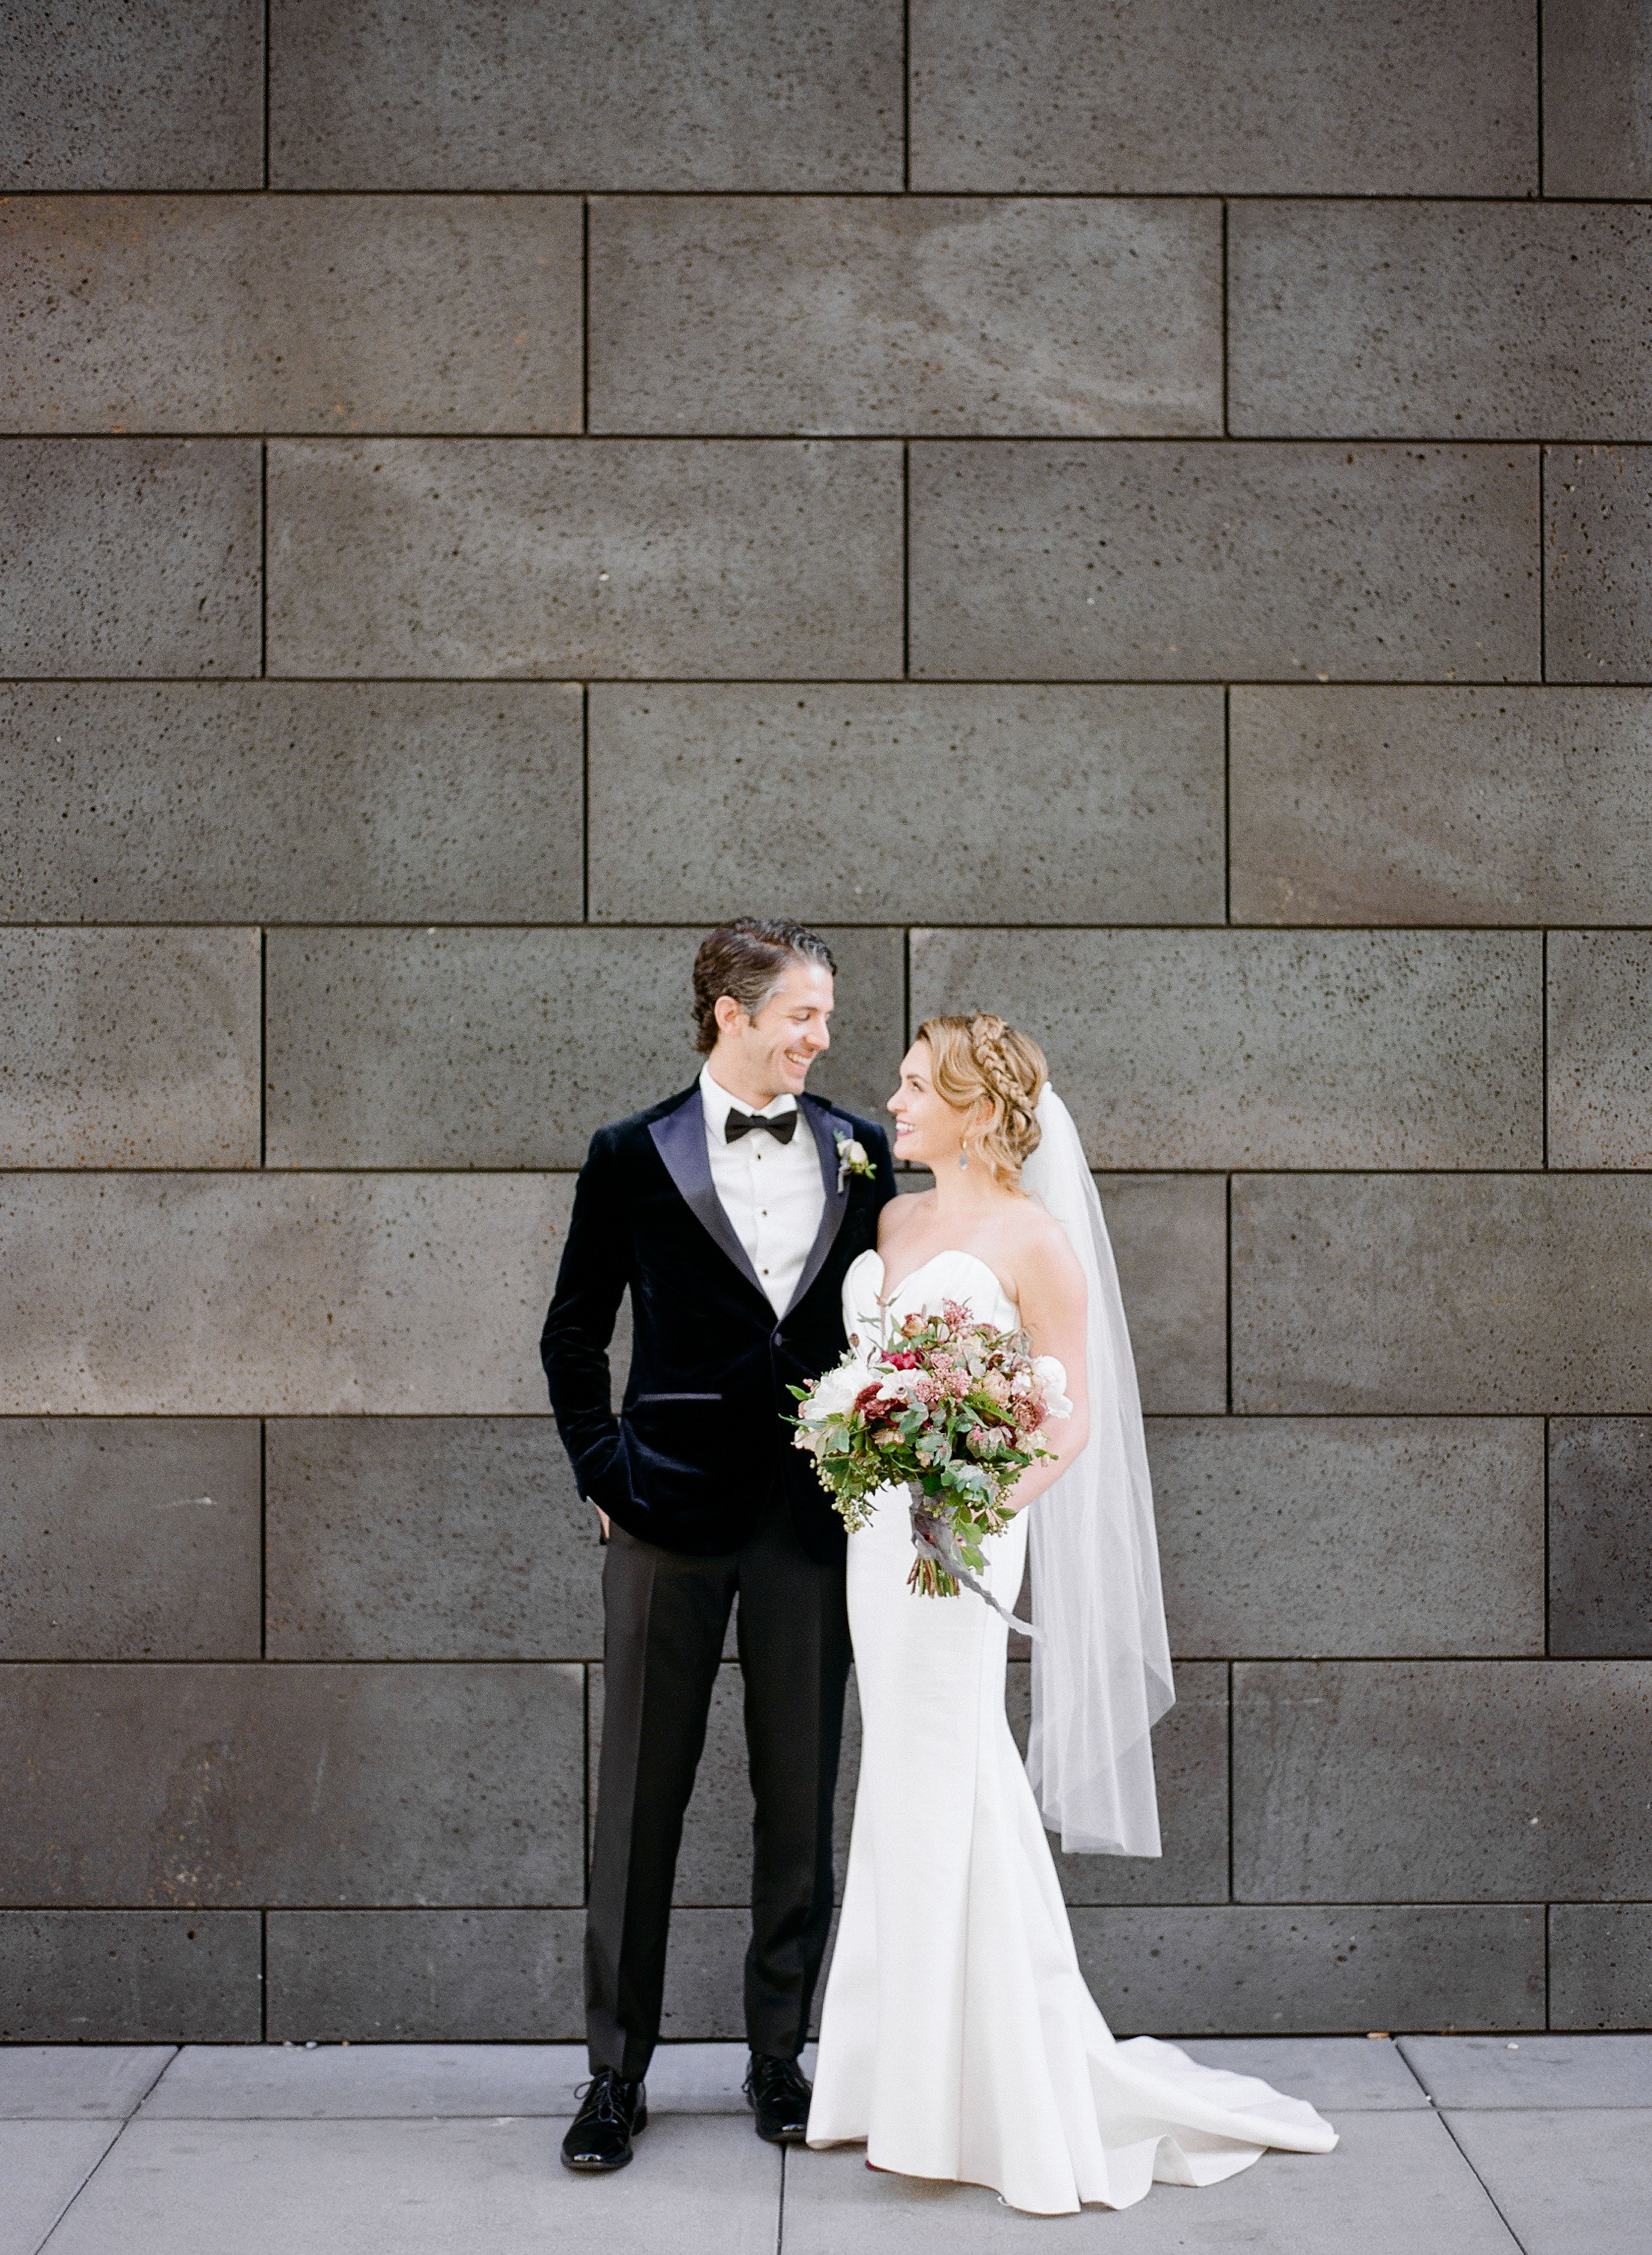 katie andre wedding couple gazing at each other gray brick wall